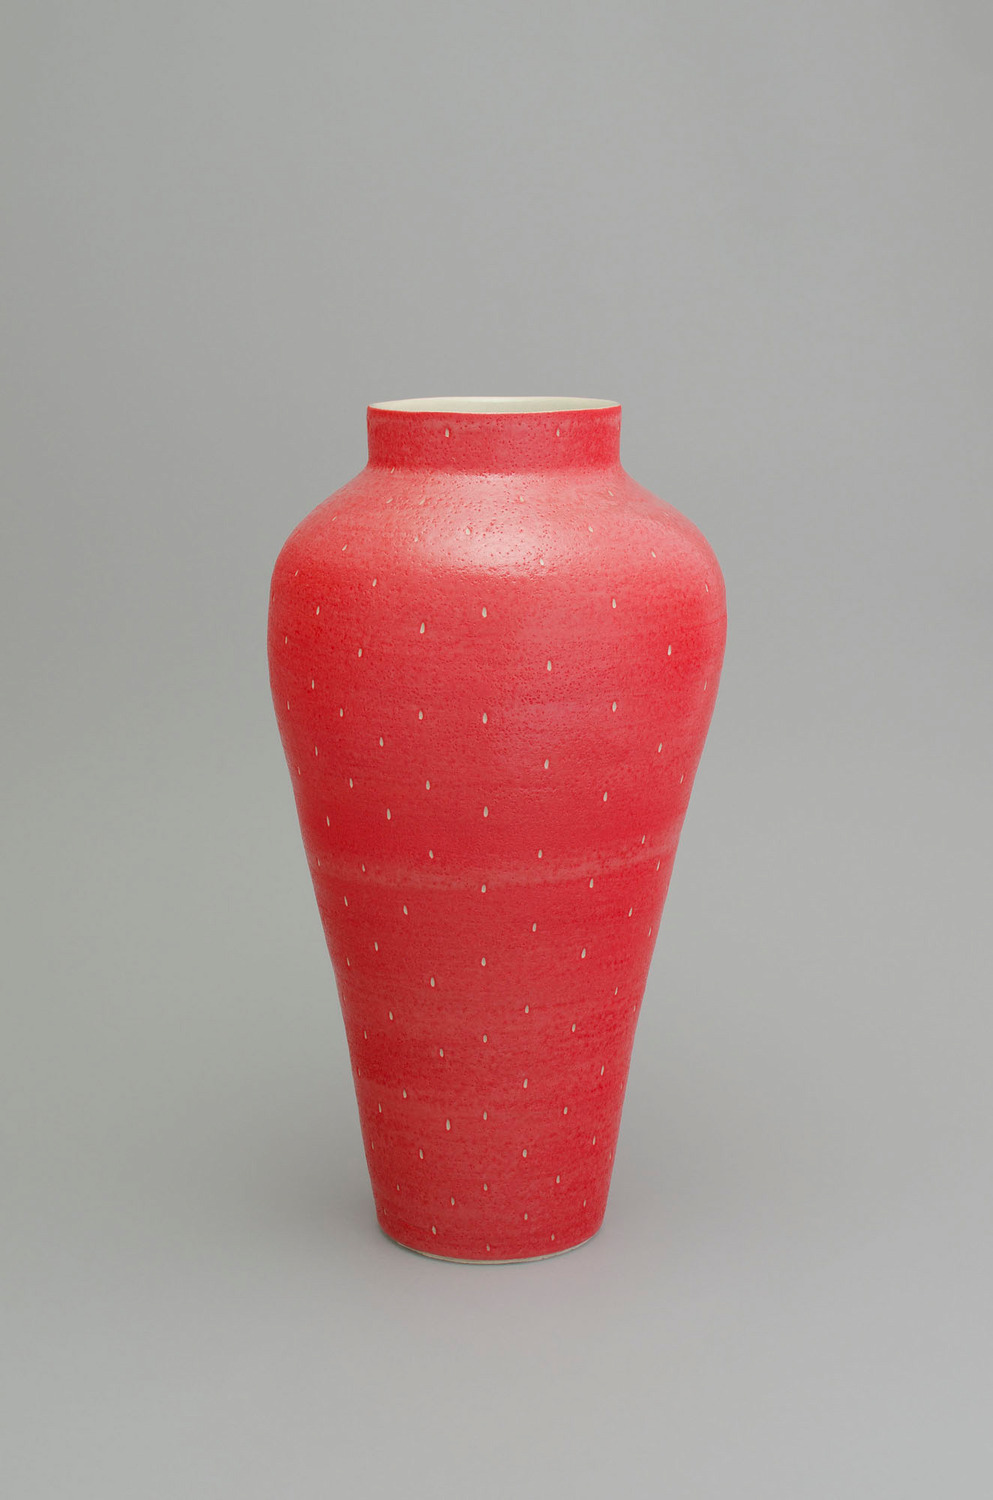 Shio Kusaka, (strawberry 40), 2015, Stoneware, 66.8 x 35.6 x 35.6 cm